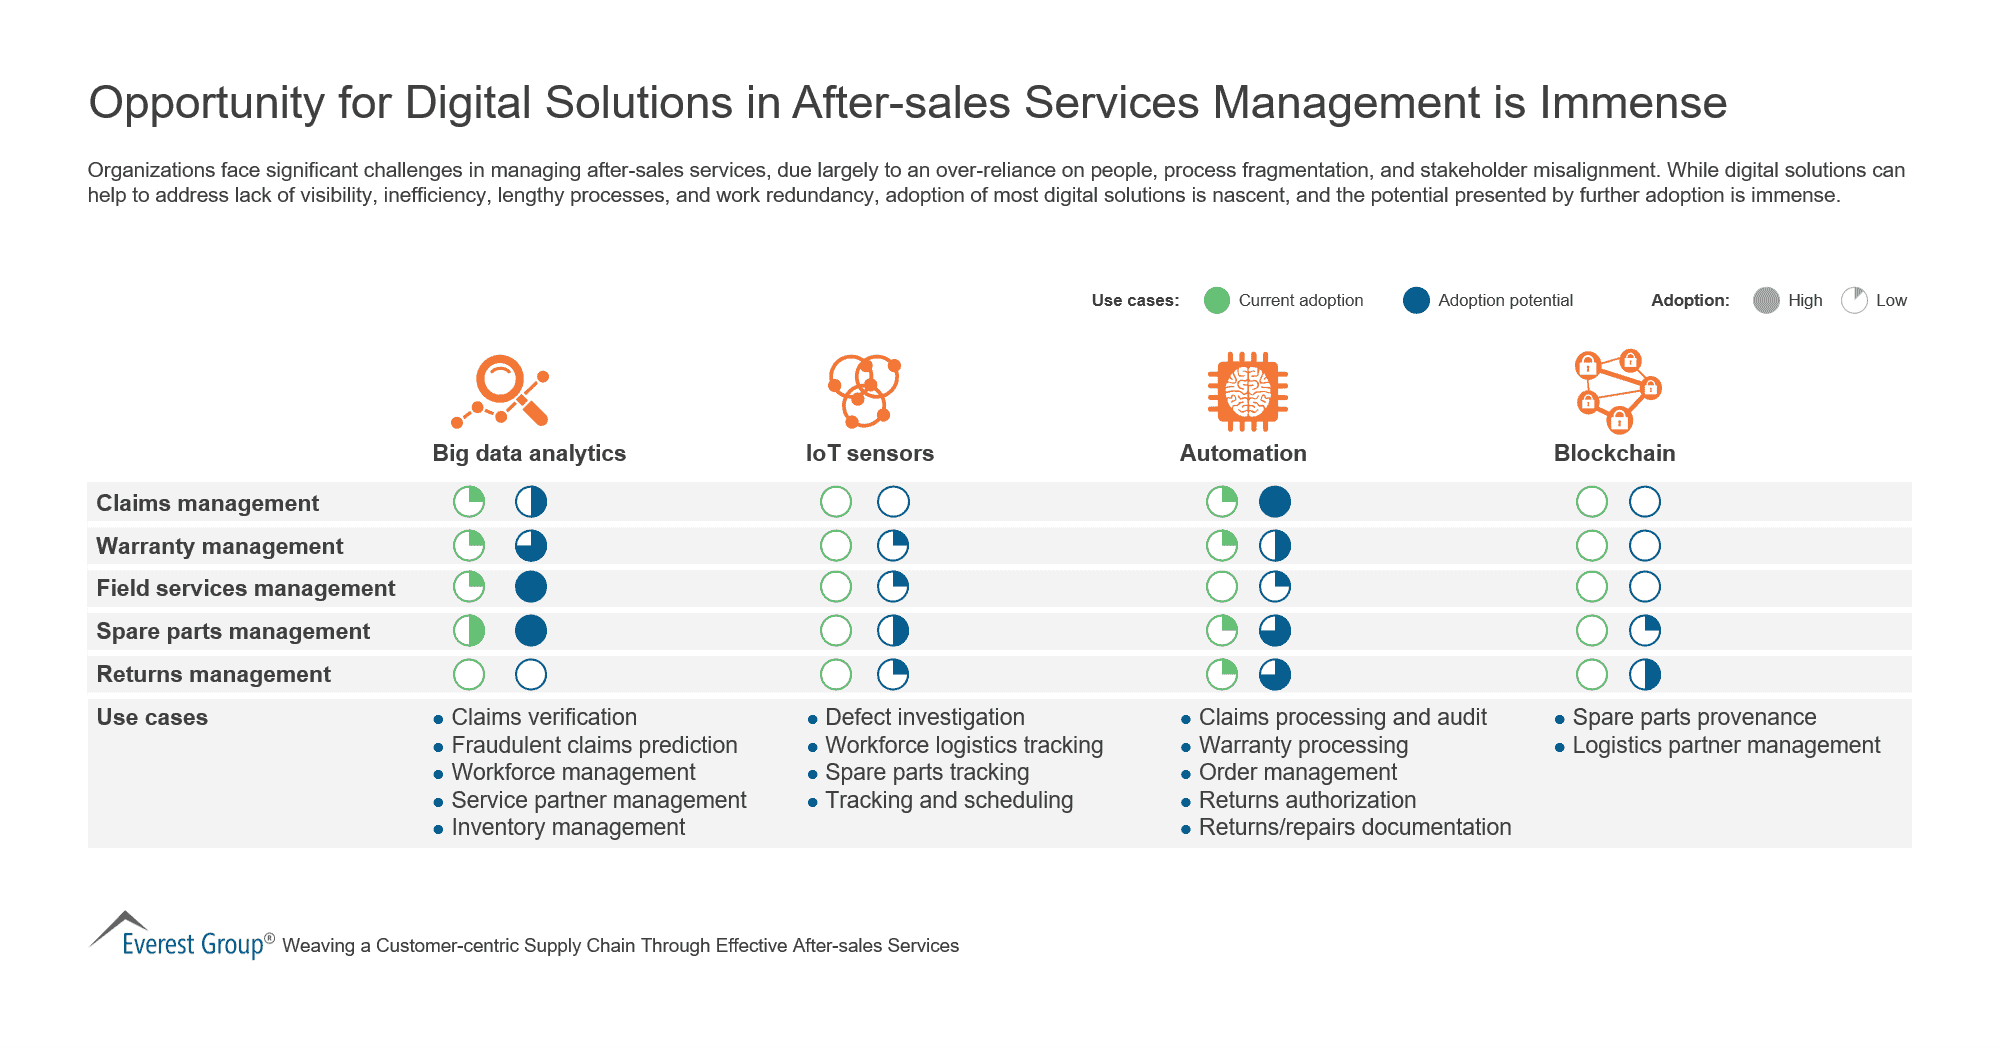 Opportunity for Digital Solutions in After-sales Services Management is Immense (1)